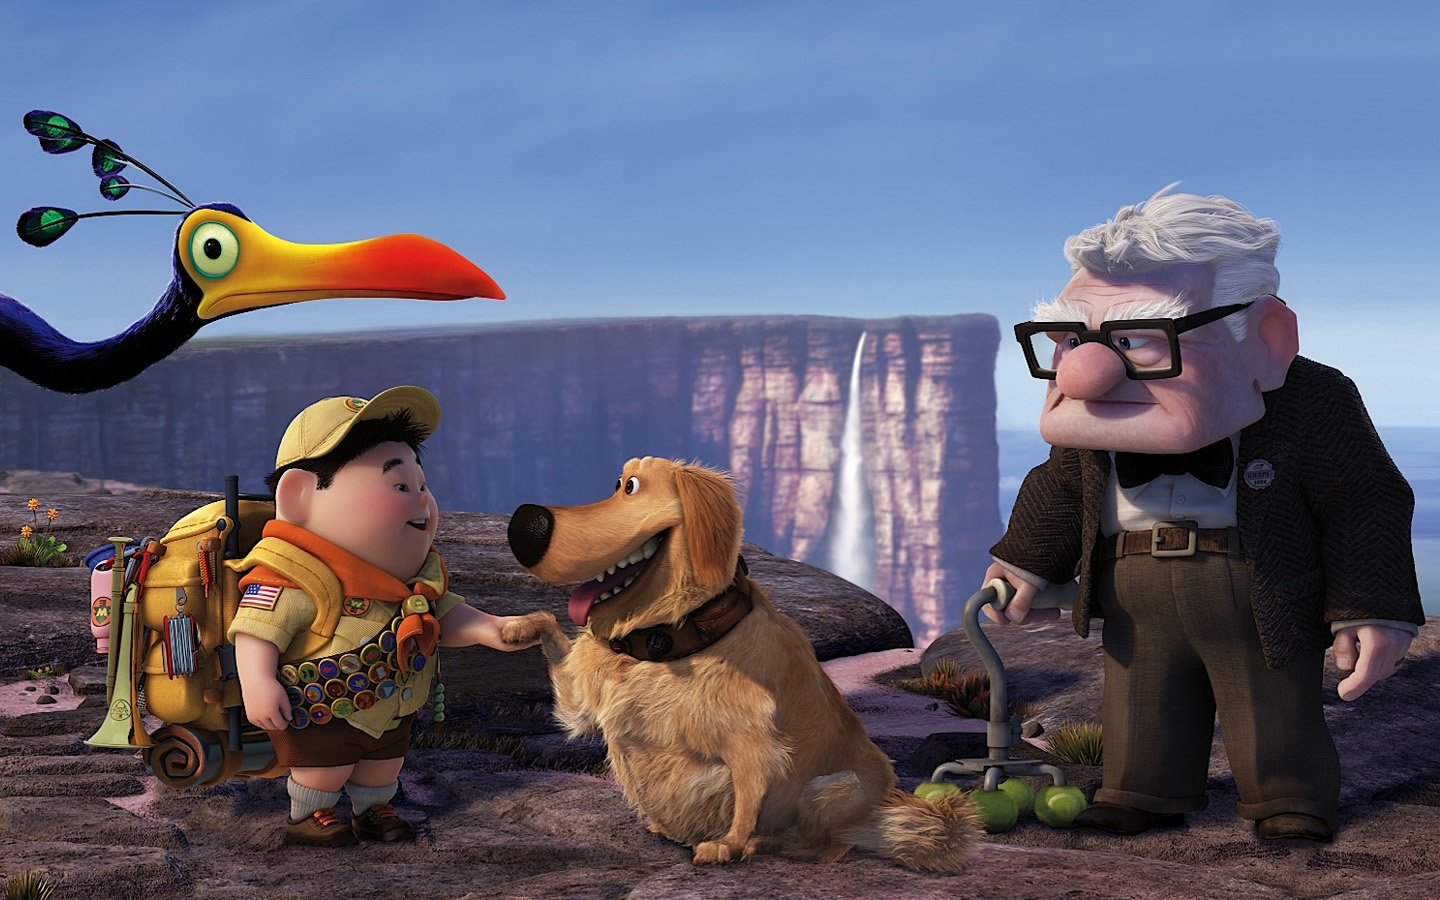 Russell Dug Carl Fredricksen in Pixars UP Wallpapers HD Wallpapers 1440x900